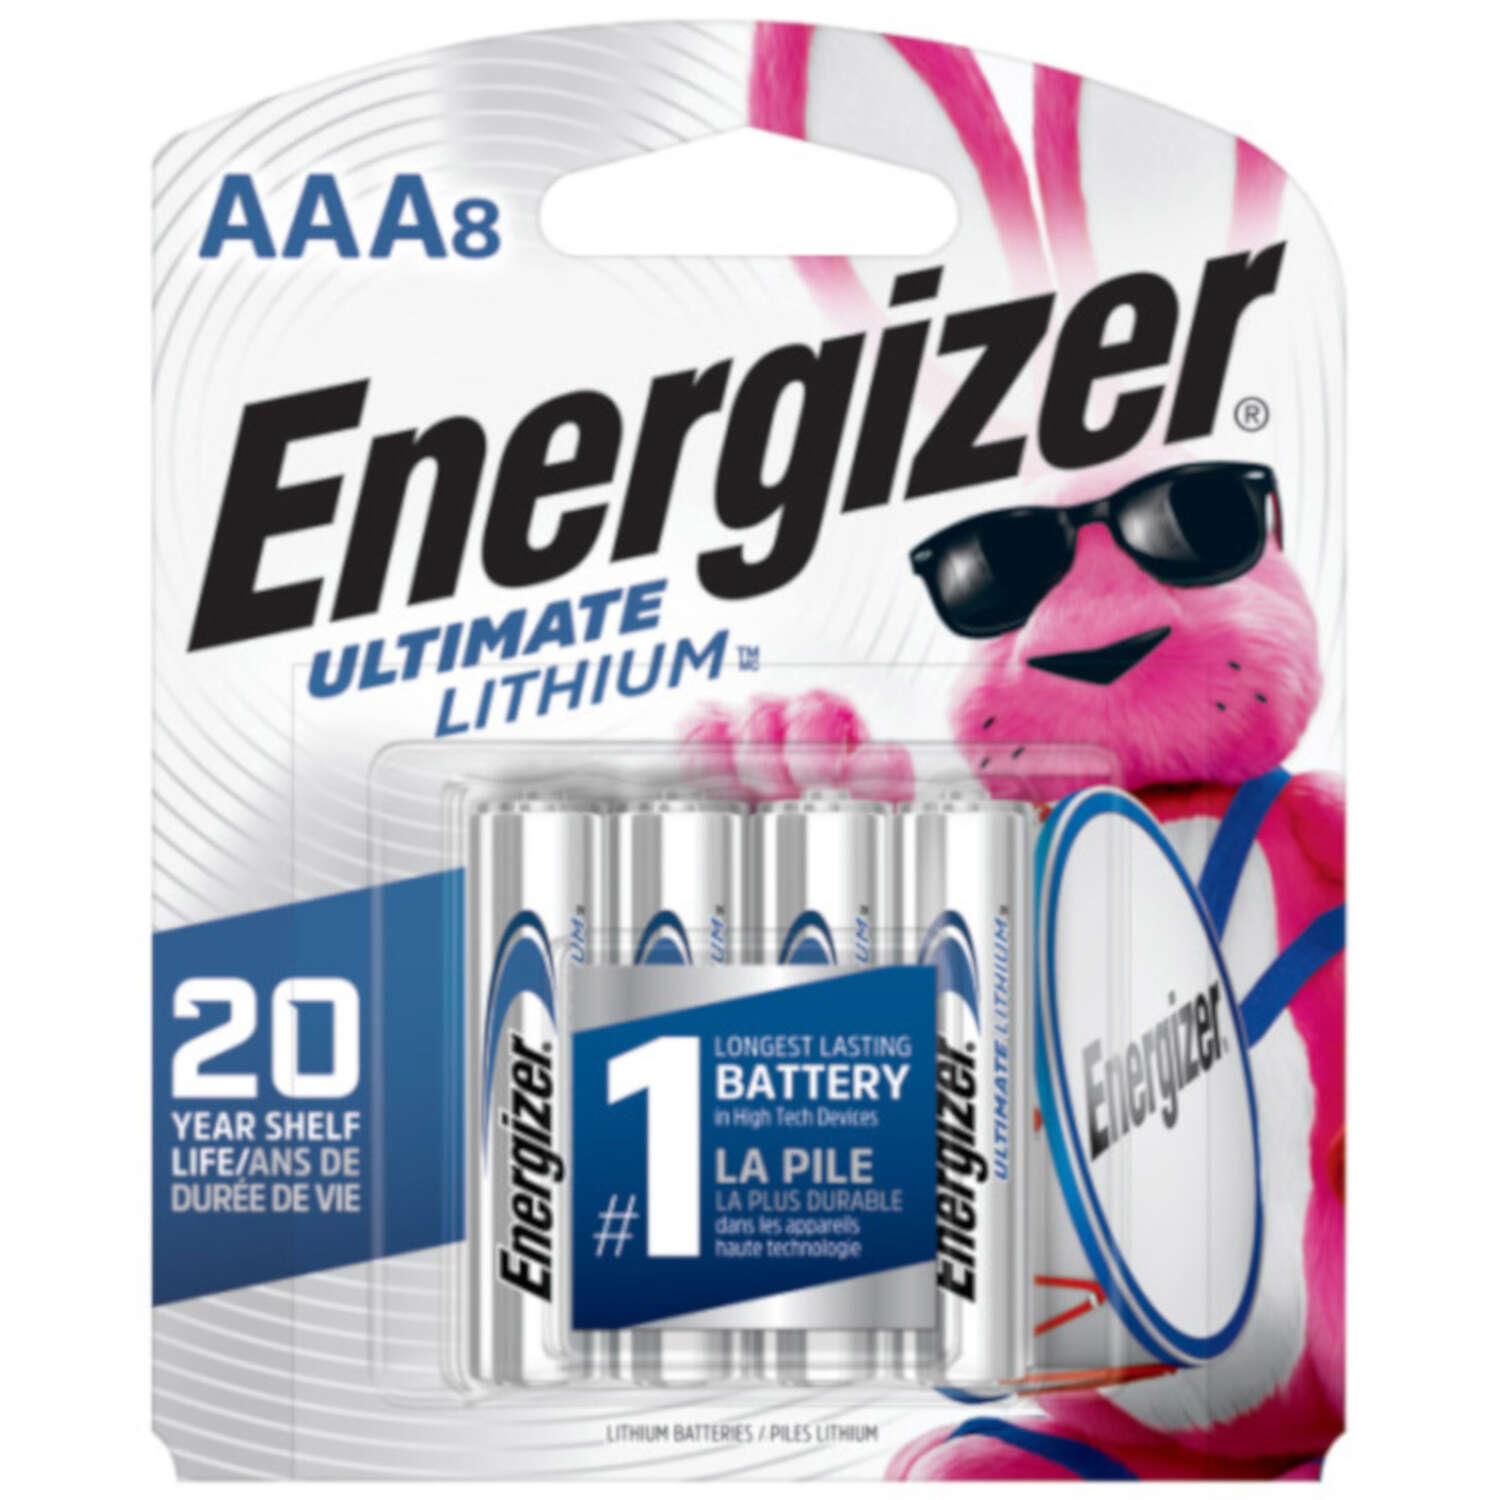 Energizer  Ultimate  Lithium  AAA  Battery  8 pk